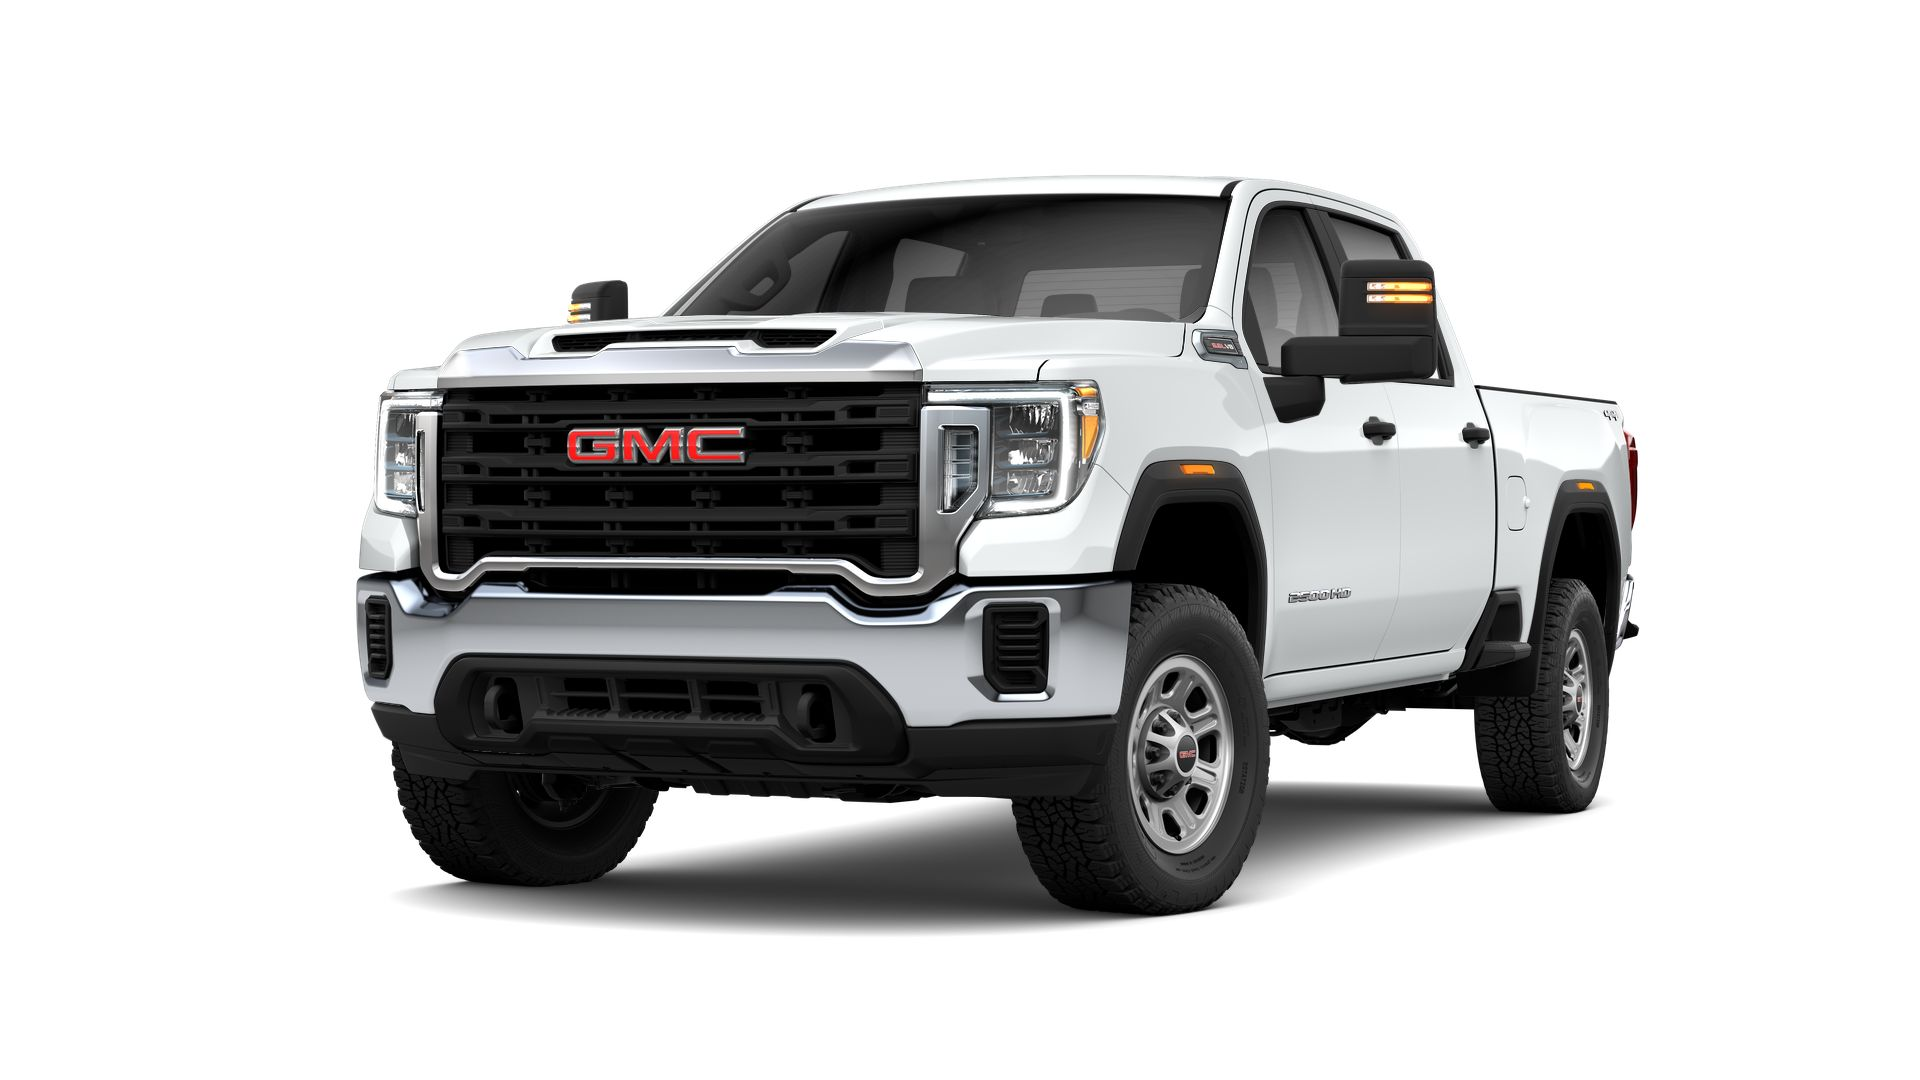 new gmc sierra hd for sale in diberville mandal buick gmc gmc sierra hd for sale in diberville